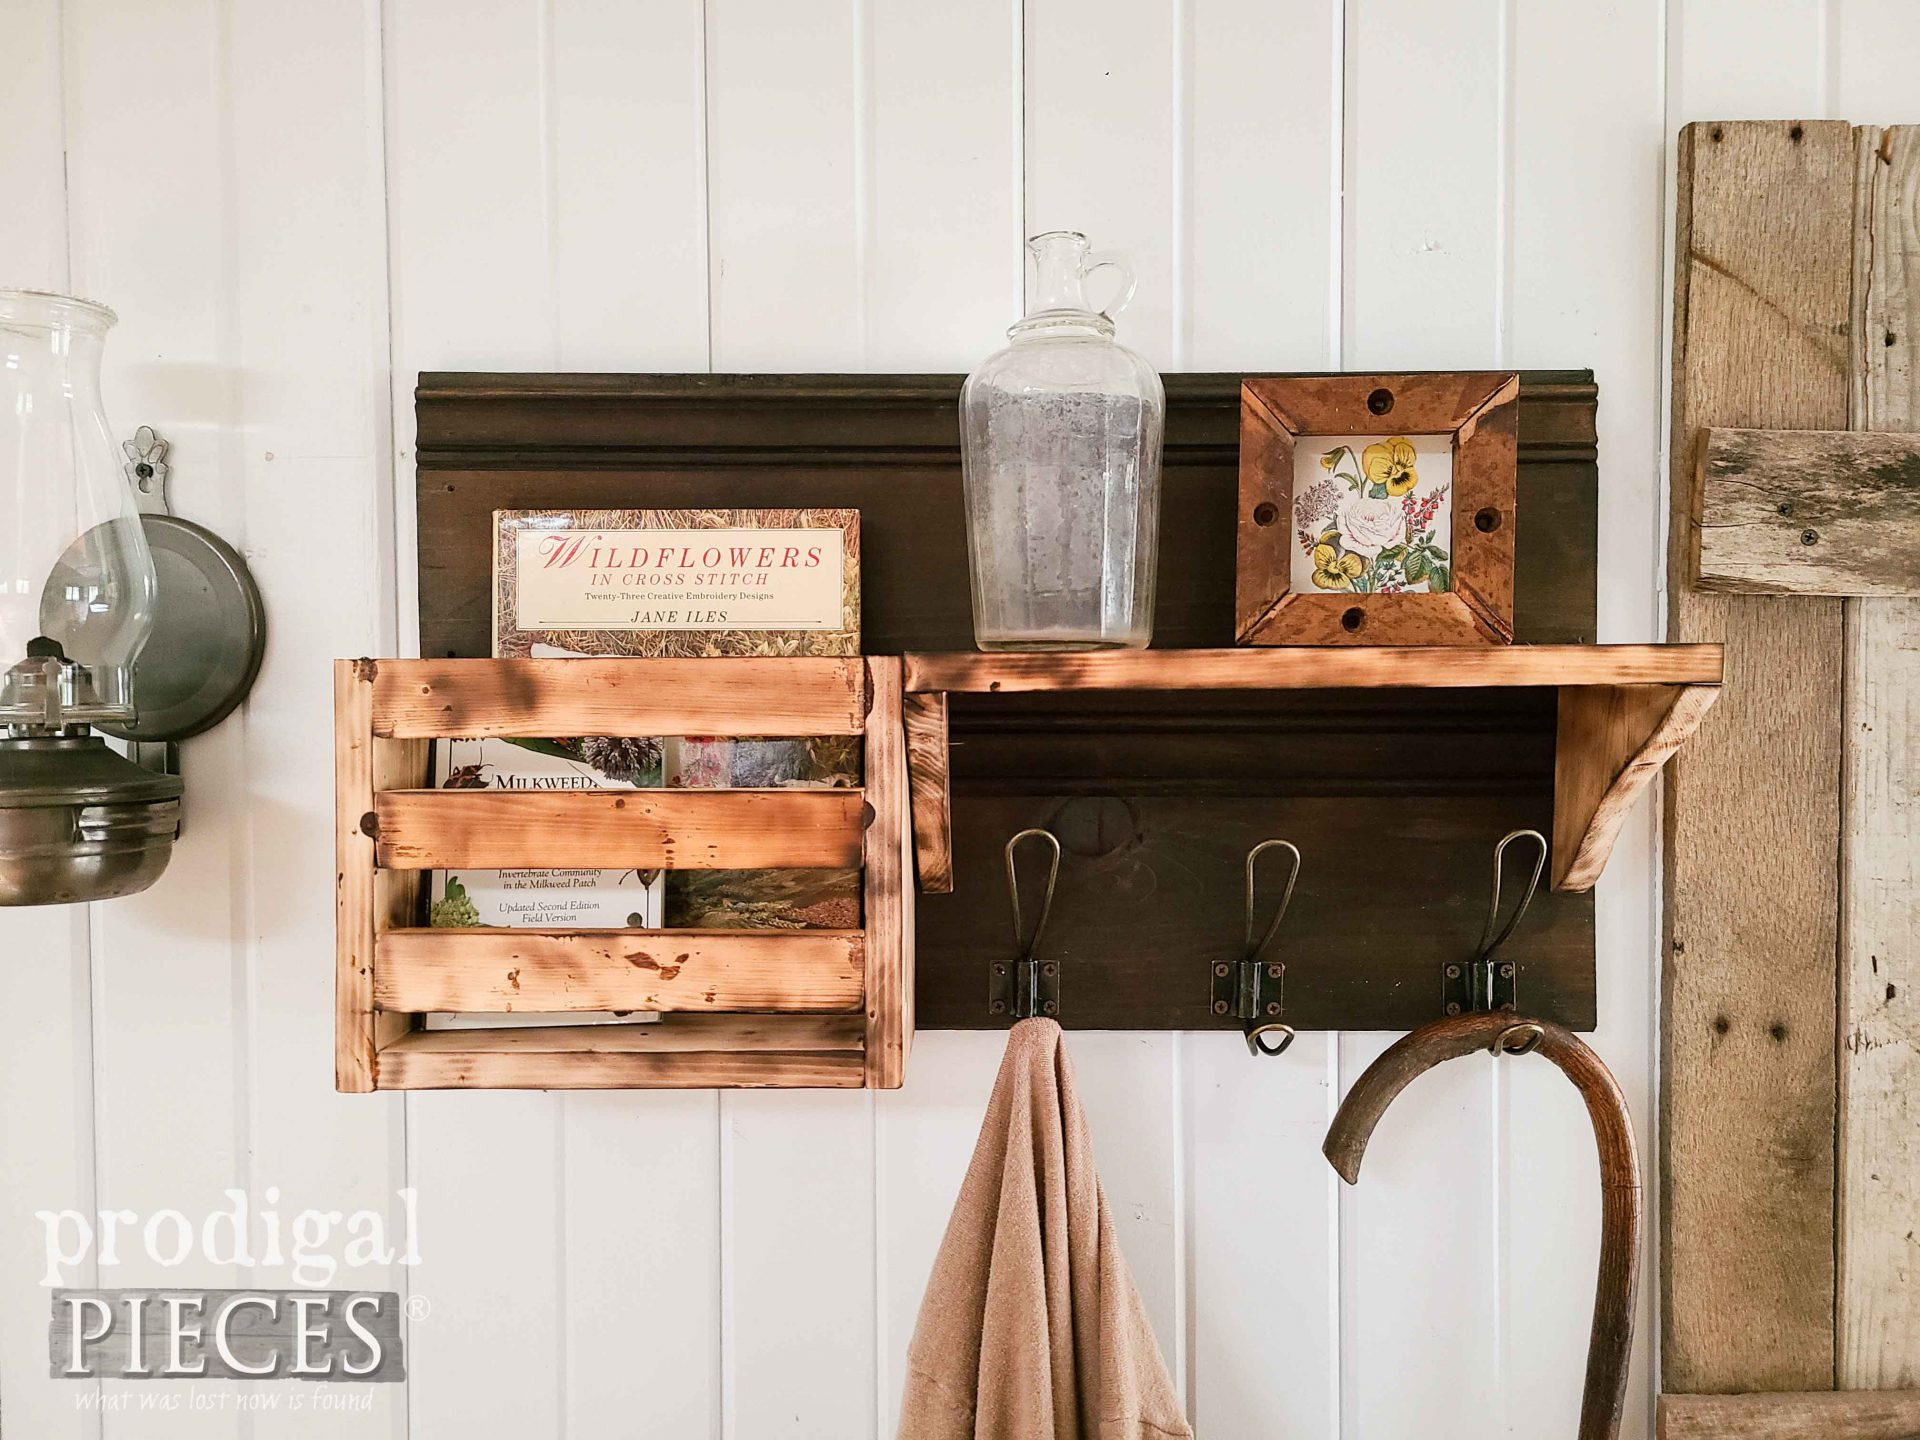 DIY Reclaimed Wood Shelf with Torched Wood Tutorial by Larissa of Prodigal Pieces | prodigalpieces.com #prodigalpieces #farmhouse #diy #woodworking #home